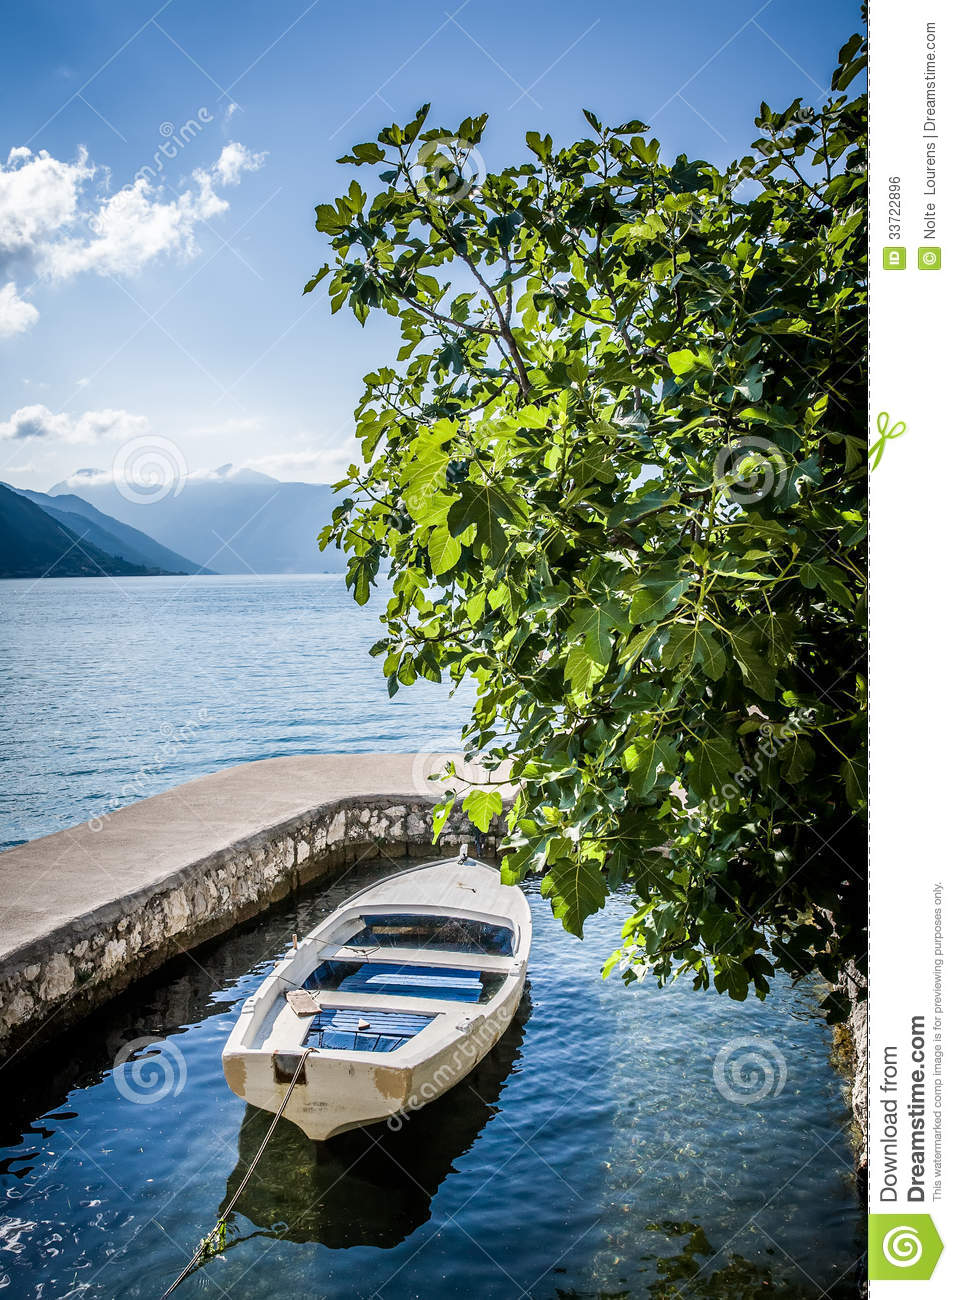 Boat in the water garage stock photo. Image of warm ...